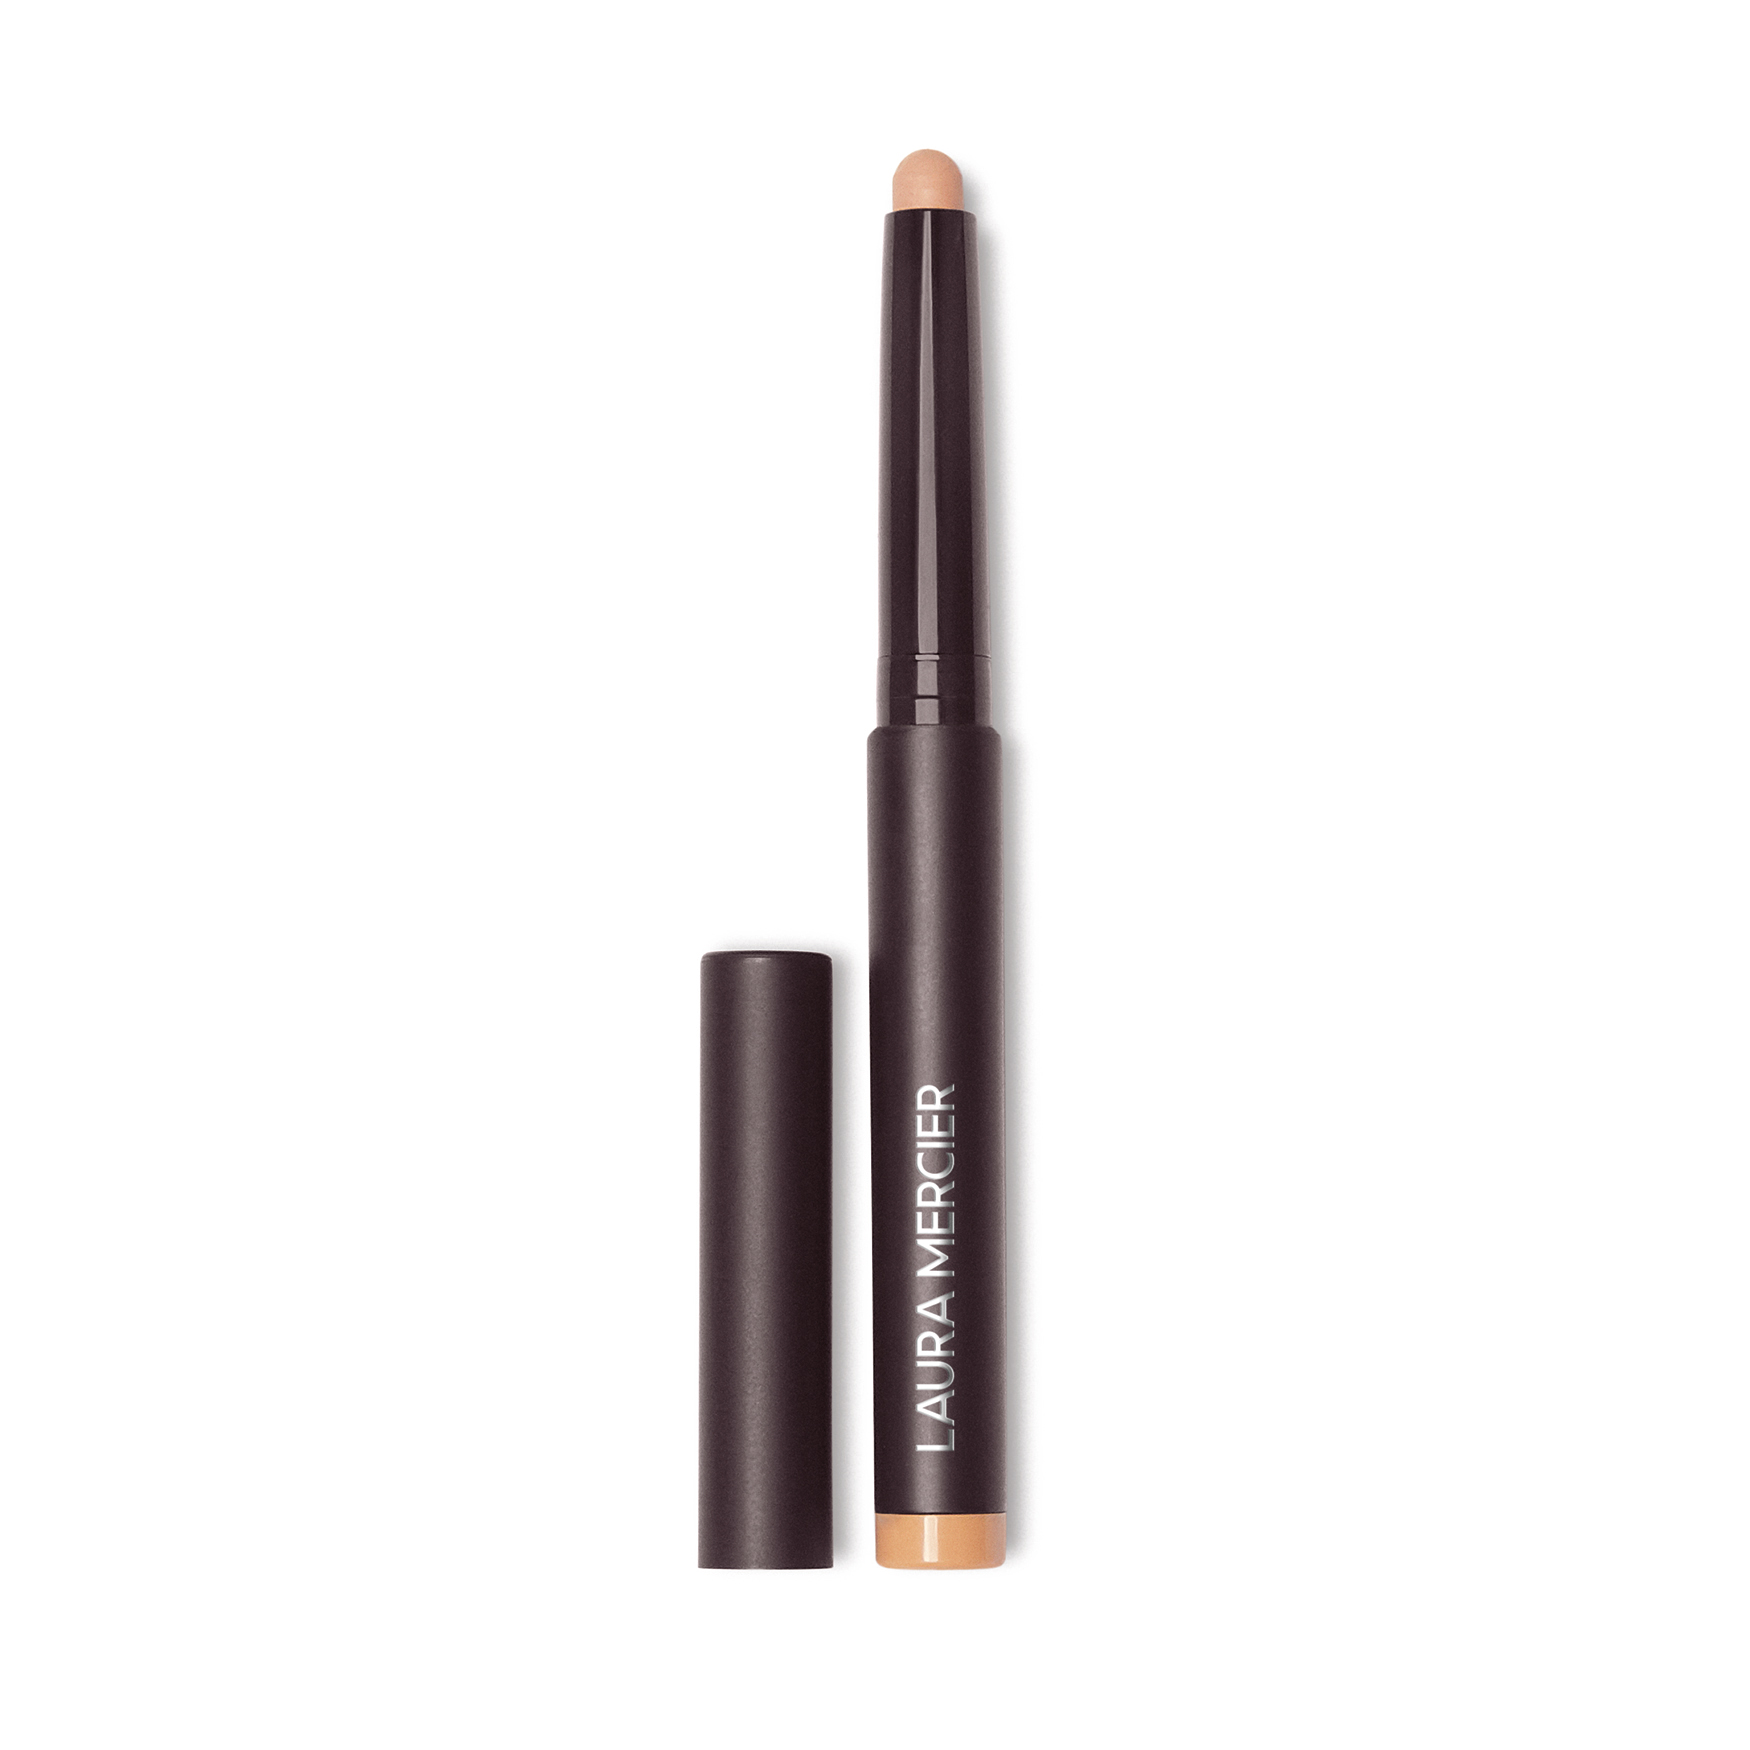 Caviar Stick Eye Colour Limited Edition, GINGER, large